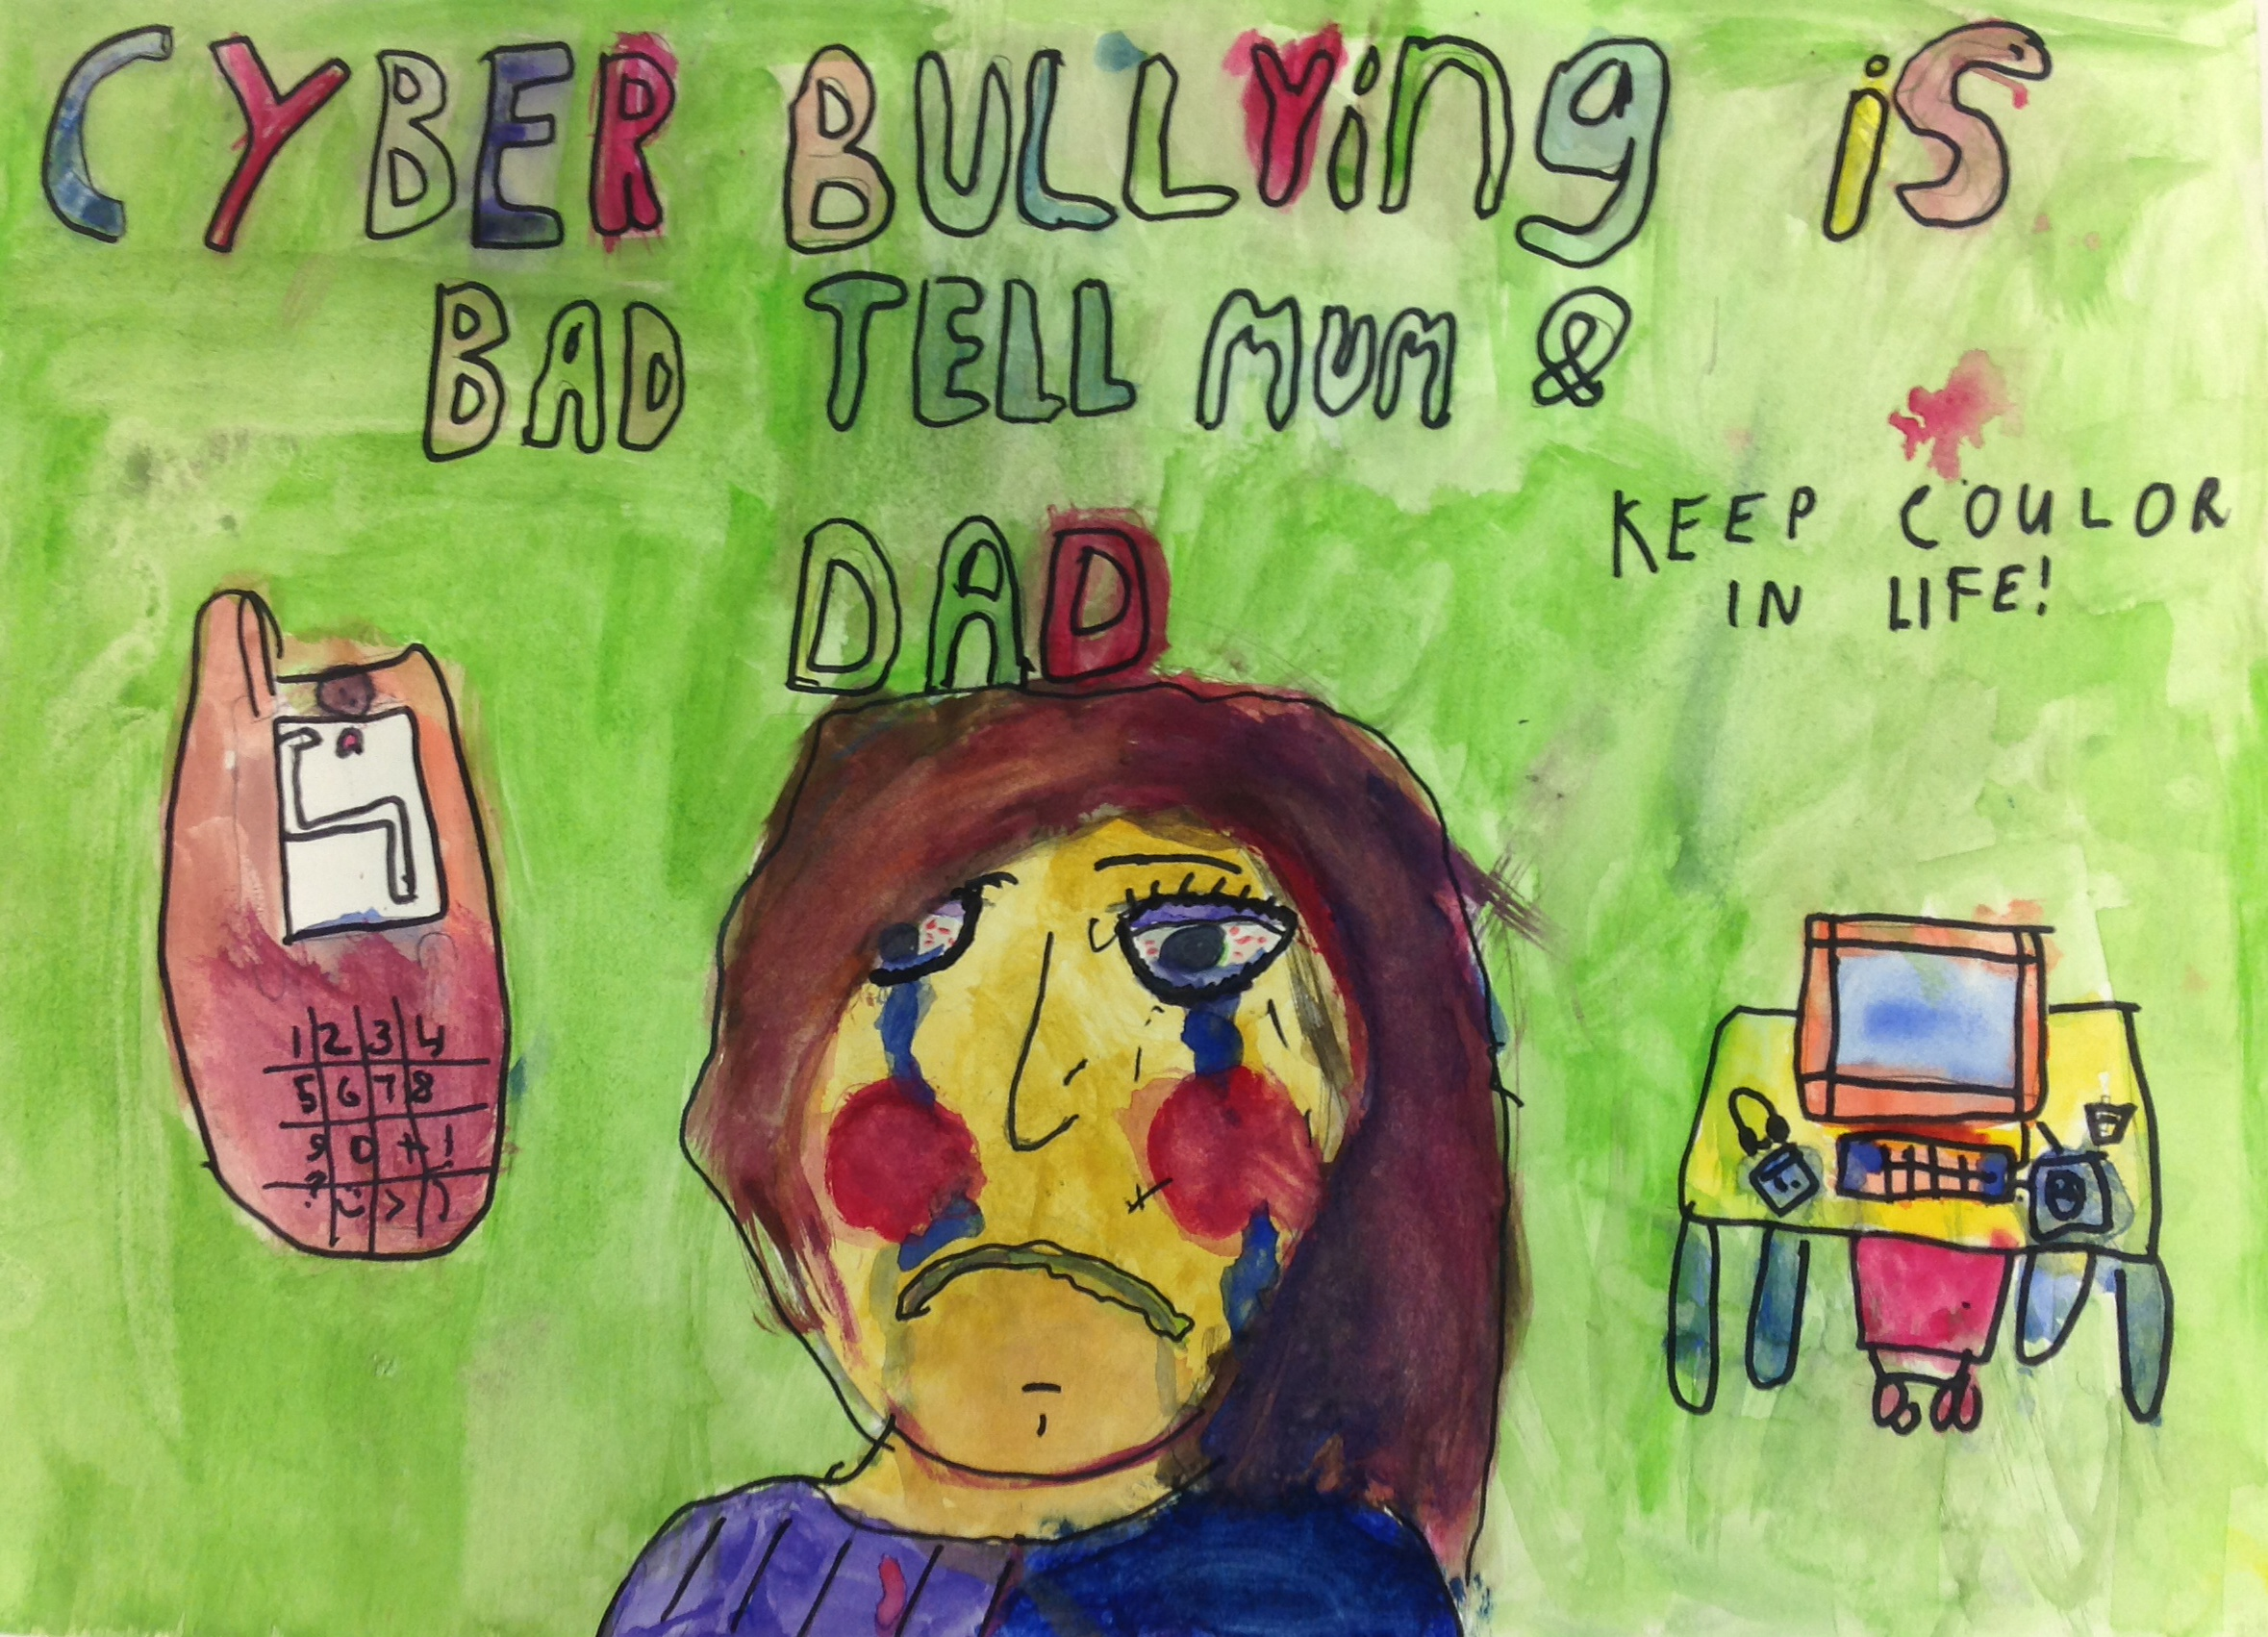 Drawn poster cyberbullying So learn about 2015 the